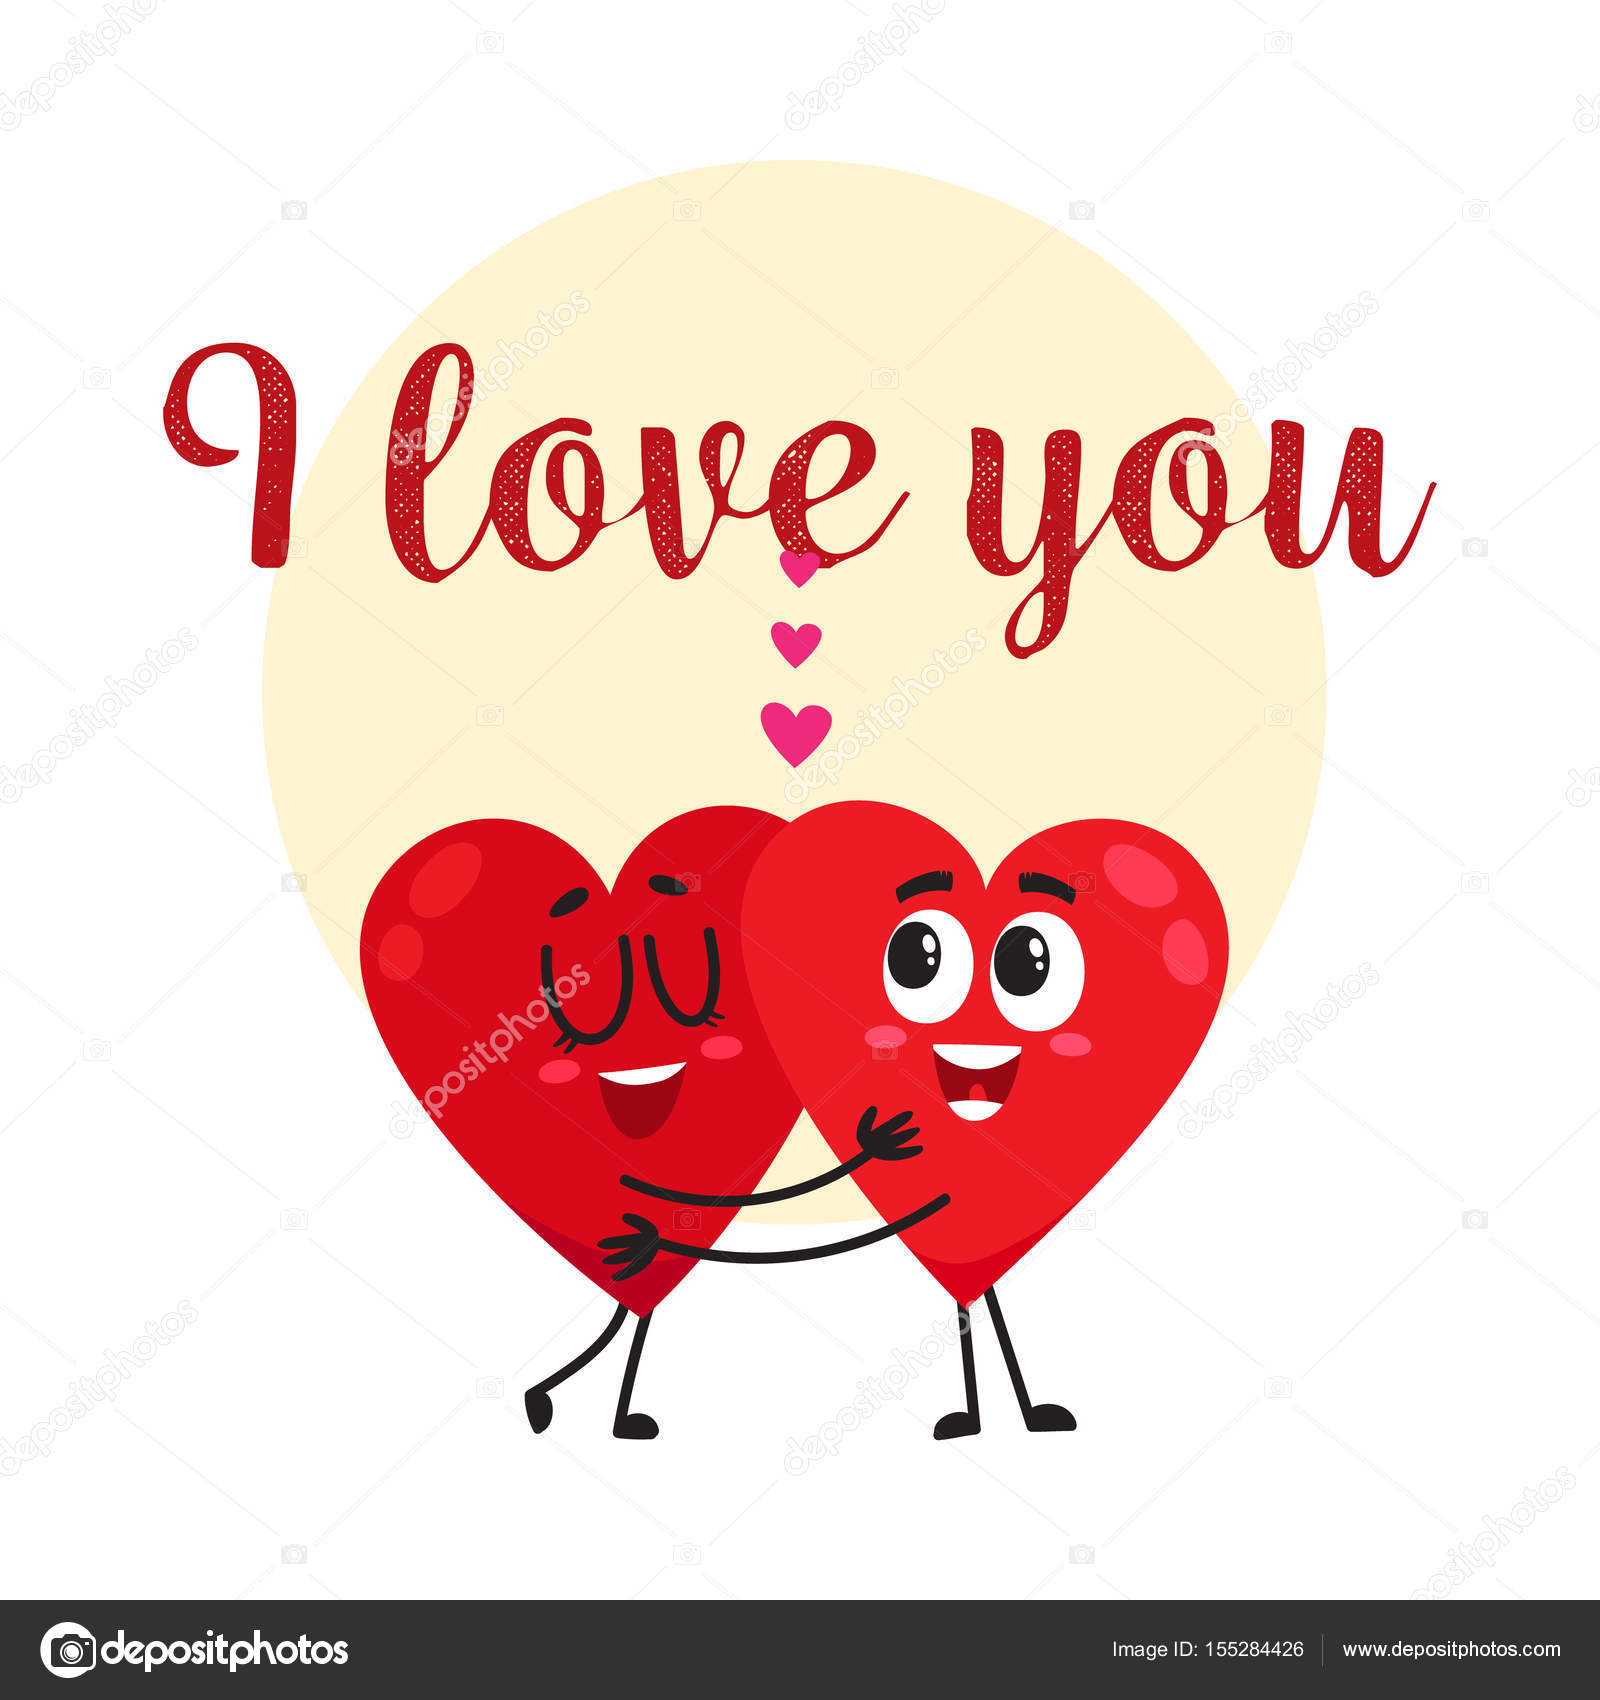 I love you - greeting card design with two hugging heart ...